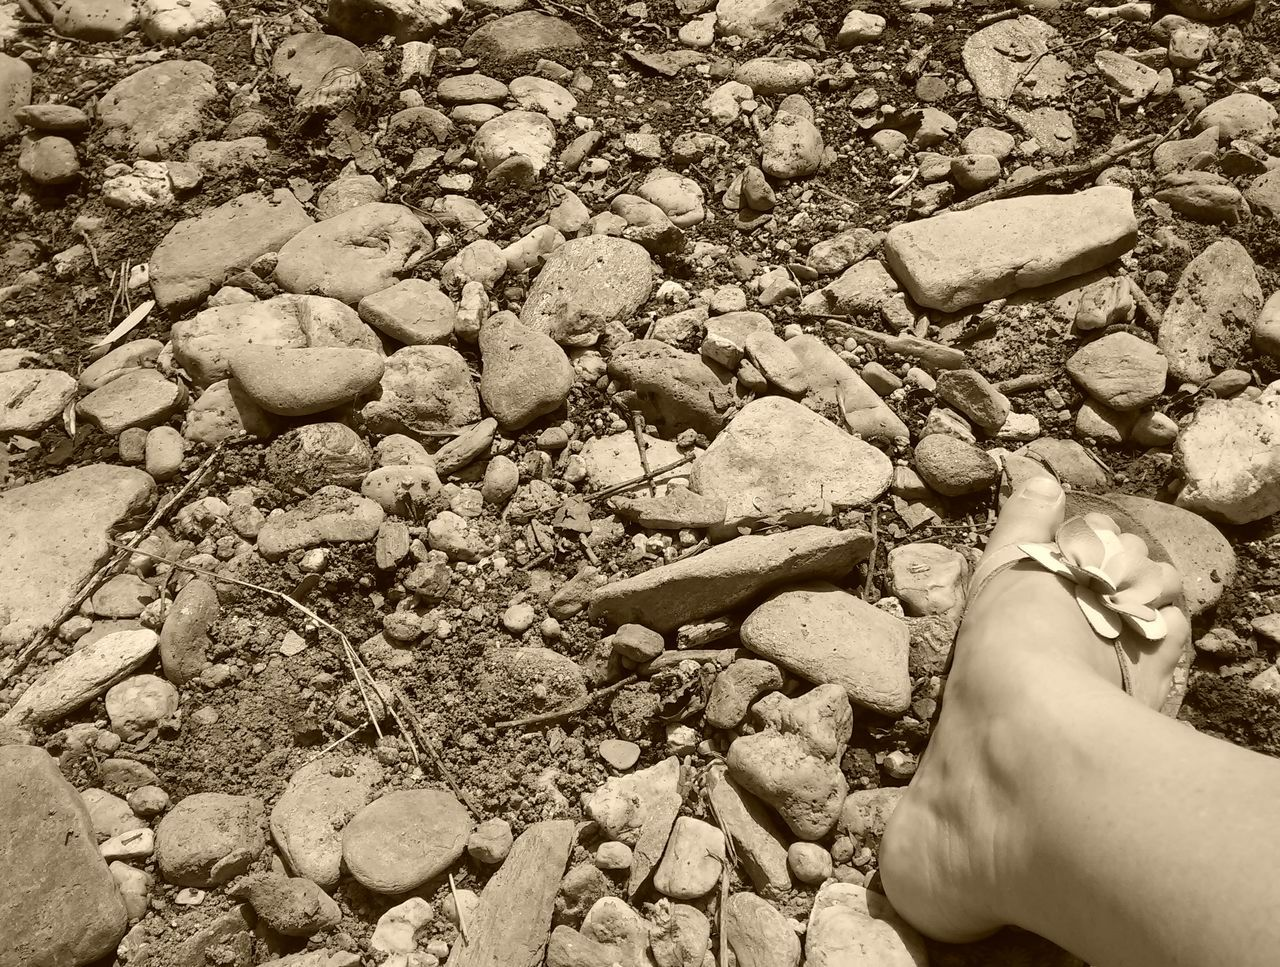 real people, human body part, one person, human leg, low section, outdoors, pebble, nature, beach, day, human hand, lifestyles, pebble beach, close-up, people